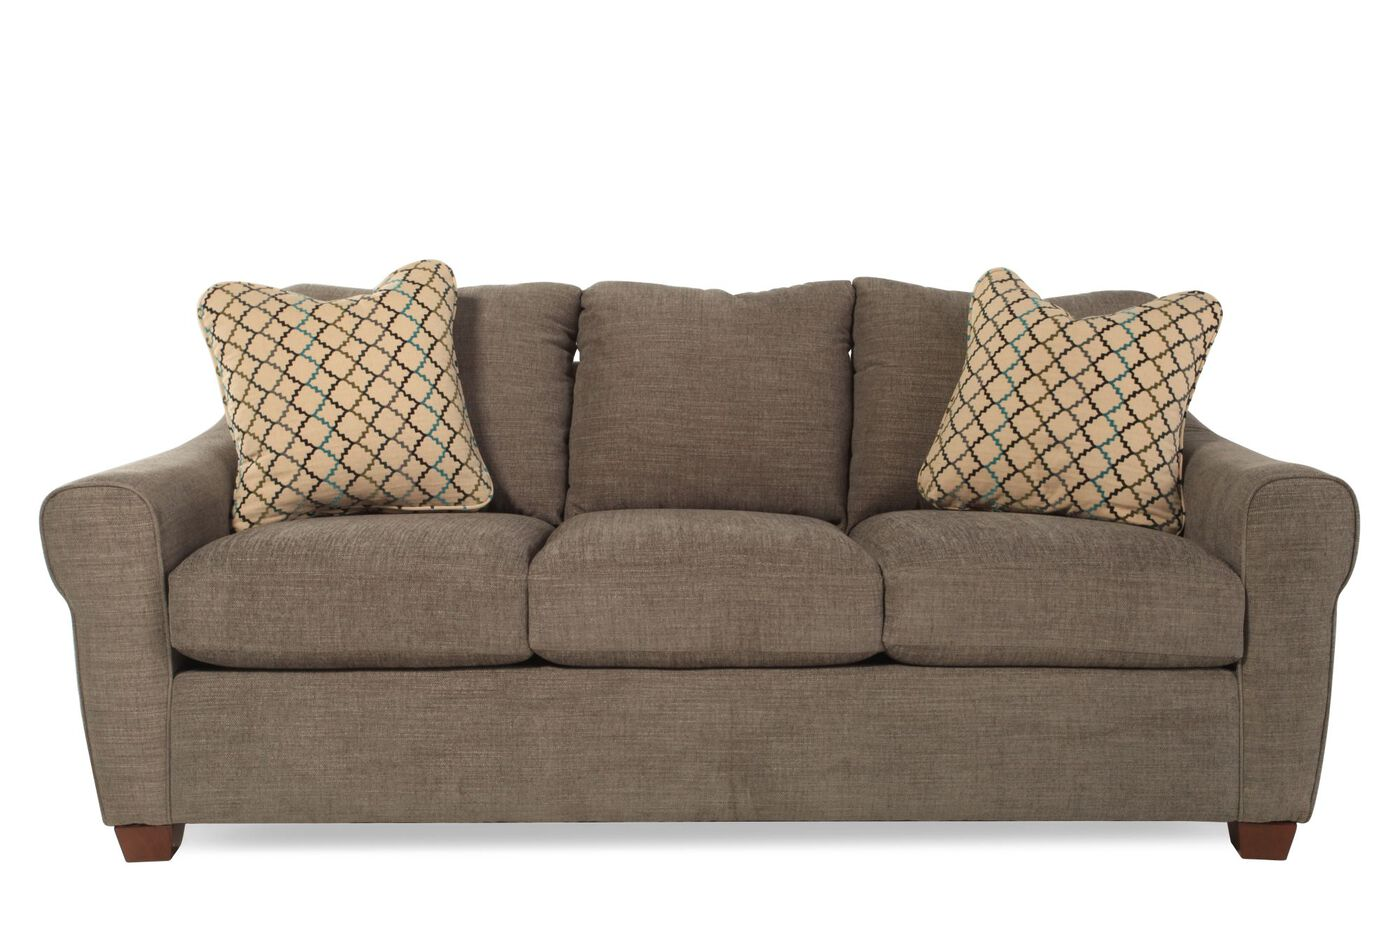 lazy boy reclining sofas reviews lazy boy sectional sofas. Black Bedroom Furniture Sets. Home Design Ideas